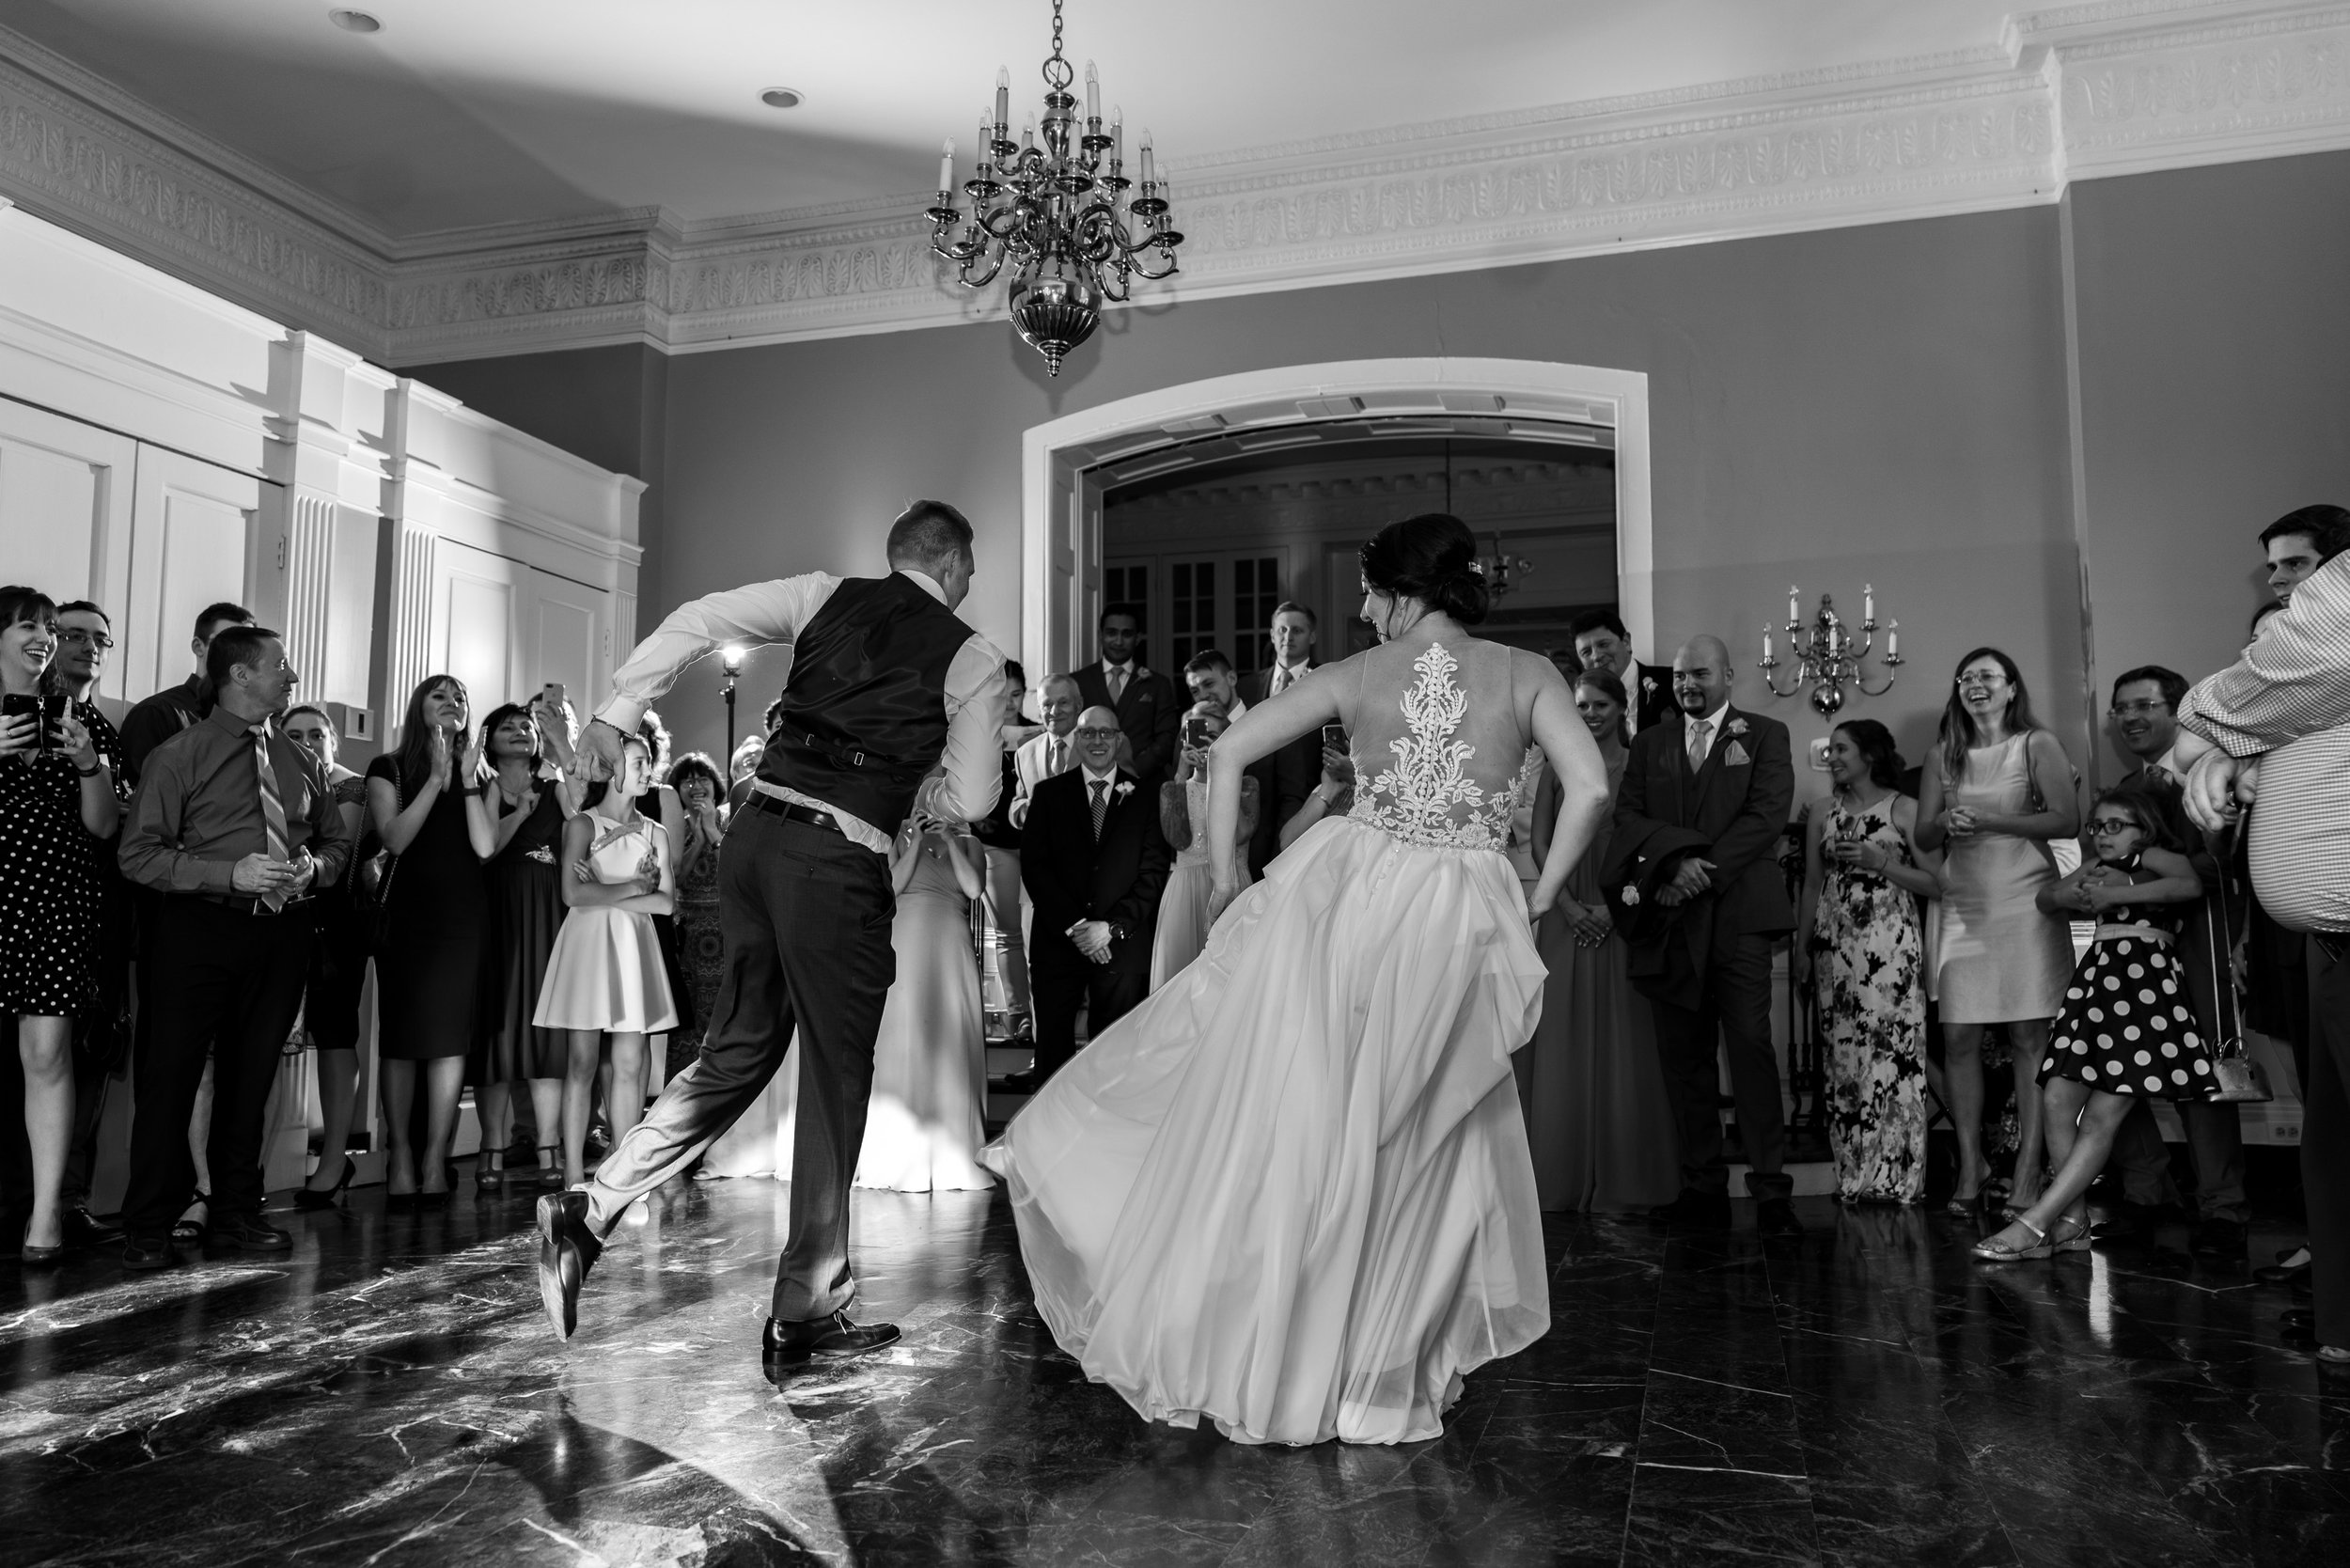 Bride and groom first dance in black and white in Rockville Maryland wedding venue